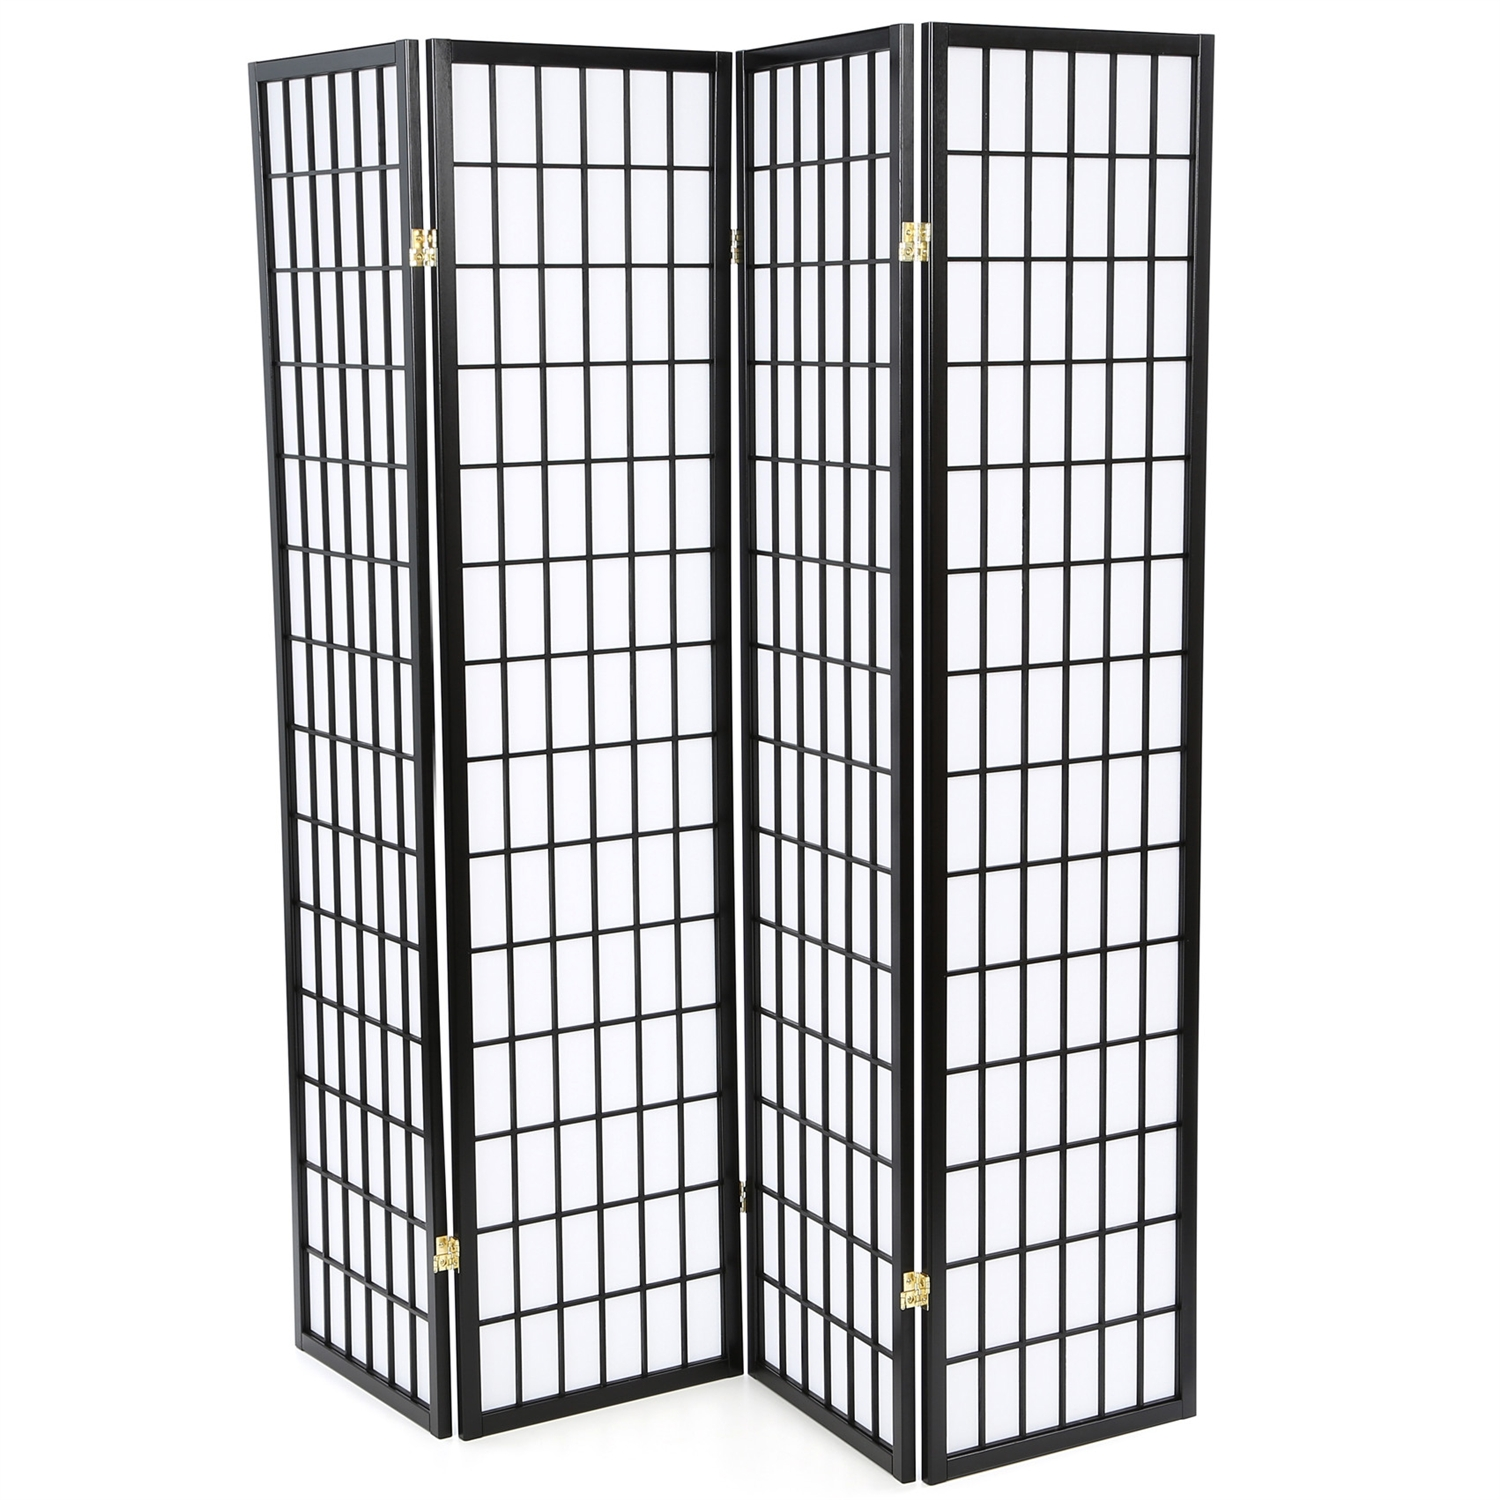 Black 4-Panel Asian Style Shoji Room Divider Screen, WHJRD75591 :  This Black 4-Panel Asian Style Shoji Room Divider Screen would be a great addition to your home. It has an Asian style and a solid wood frame construction. Screen constructed of cotton paper; Black finish; Product Type: Folding; Style: Asian/Shoji; Primary Material: Cotton; Number of Panels: 4; Country of Manufacture: Malaysia